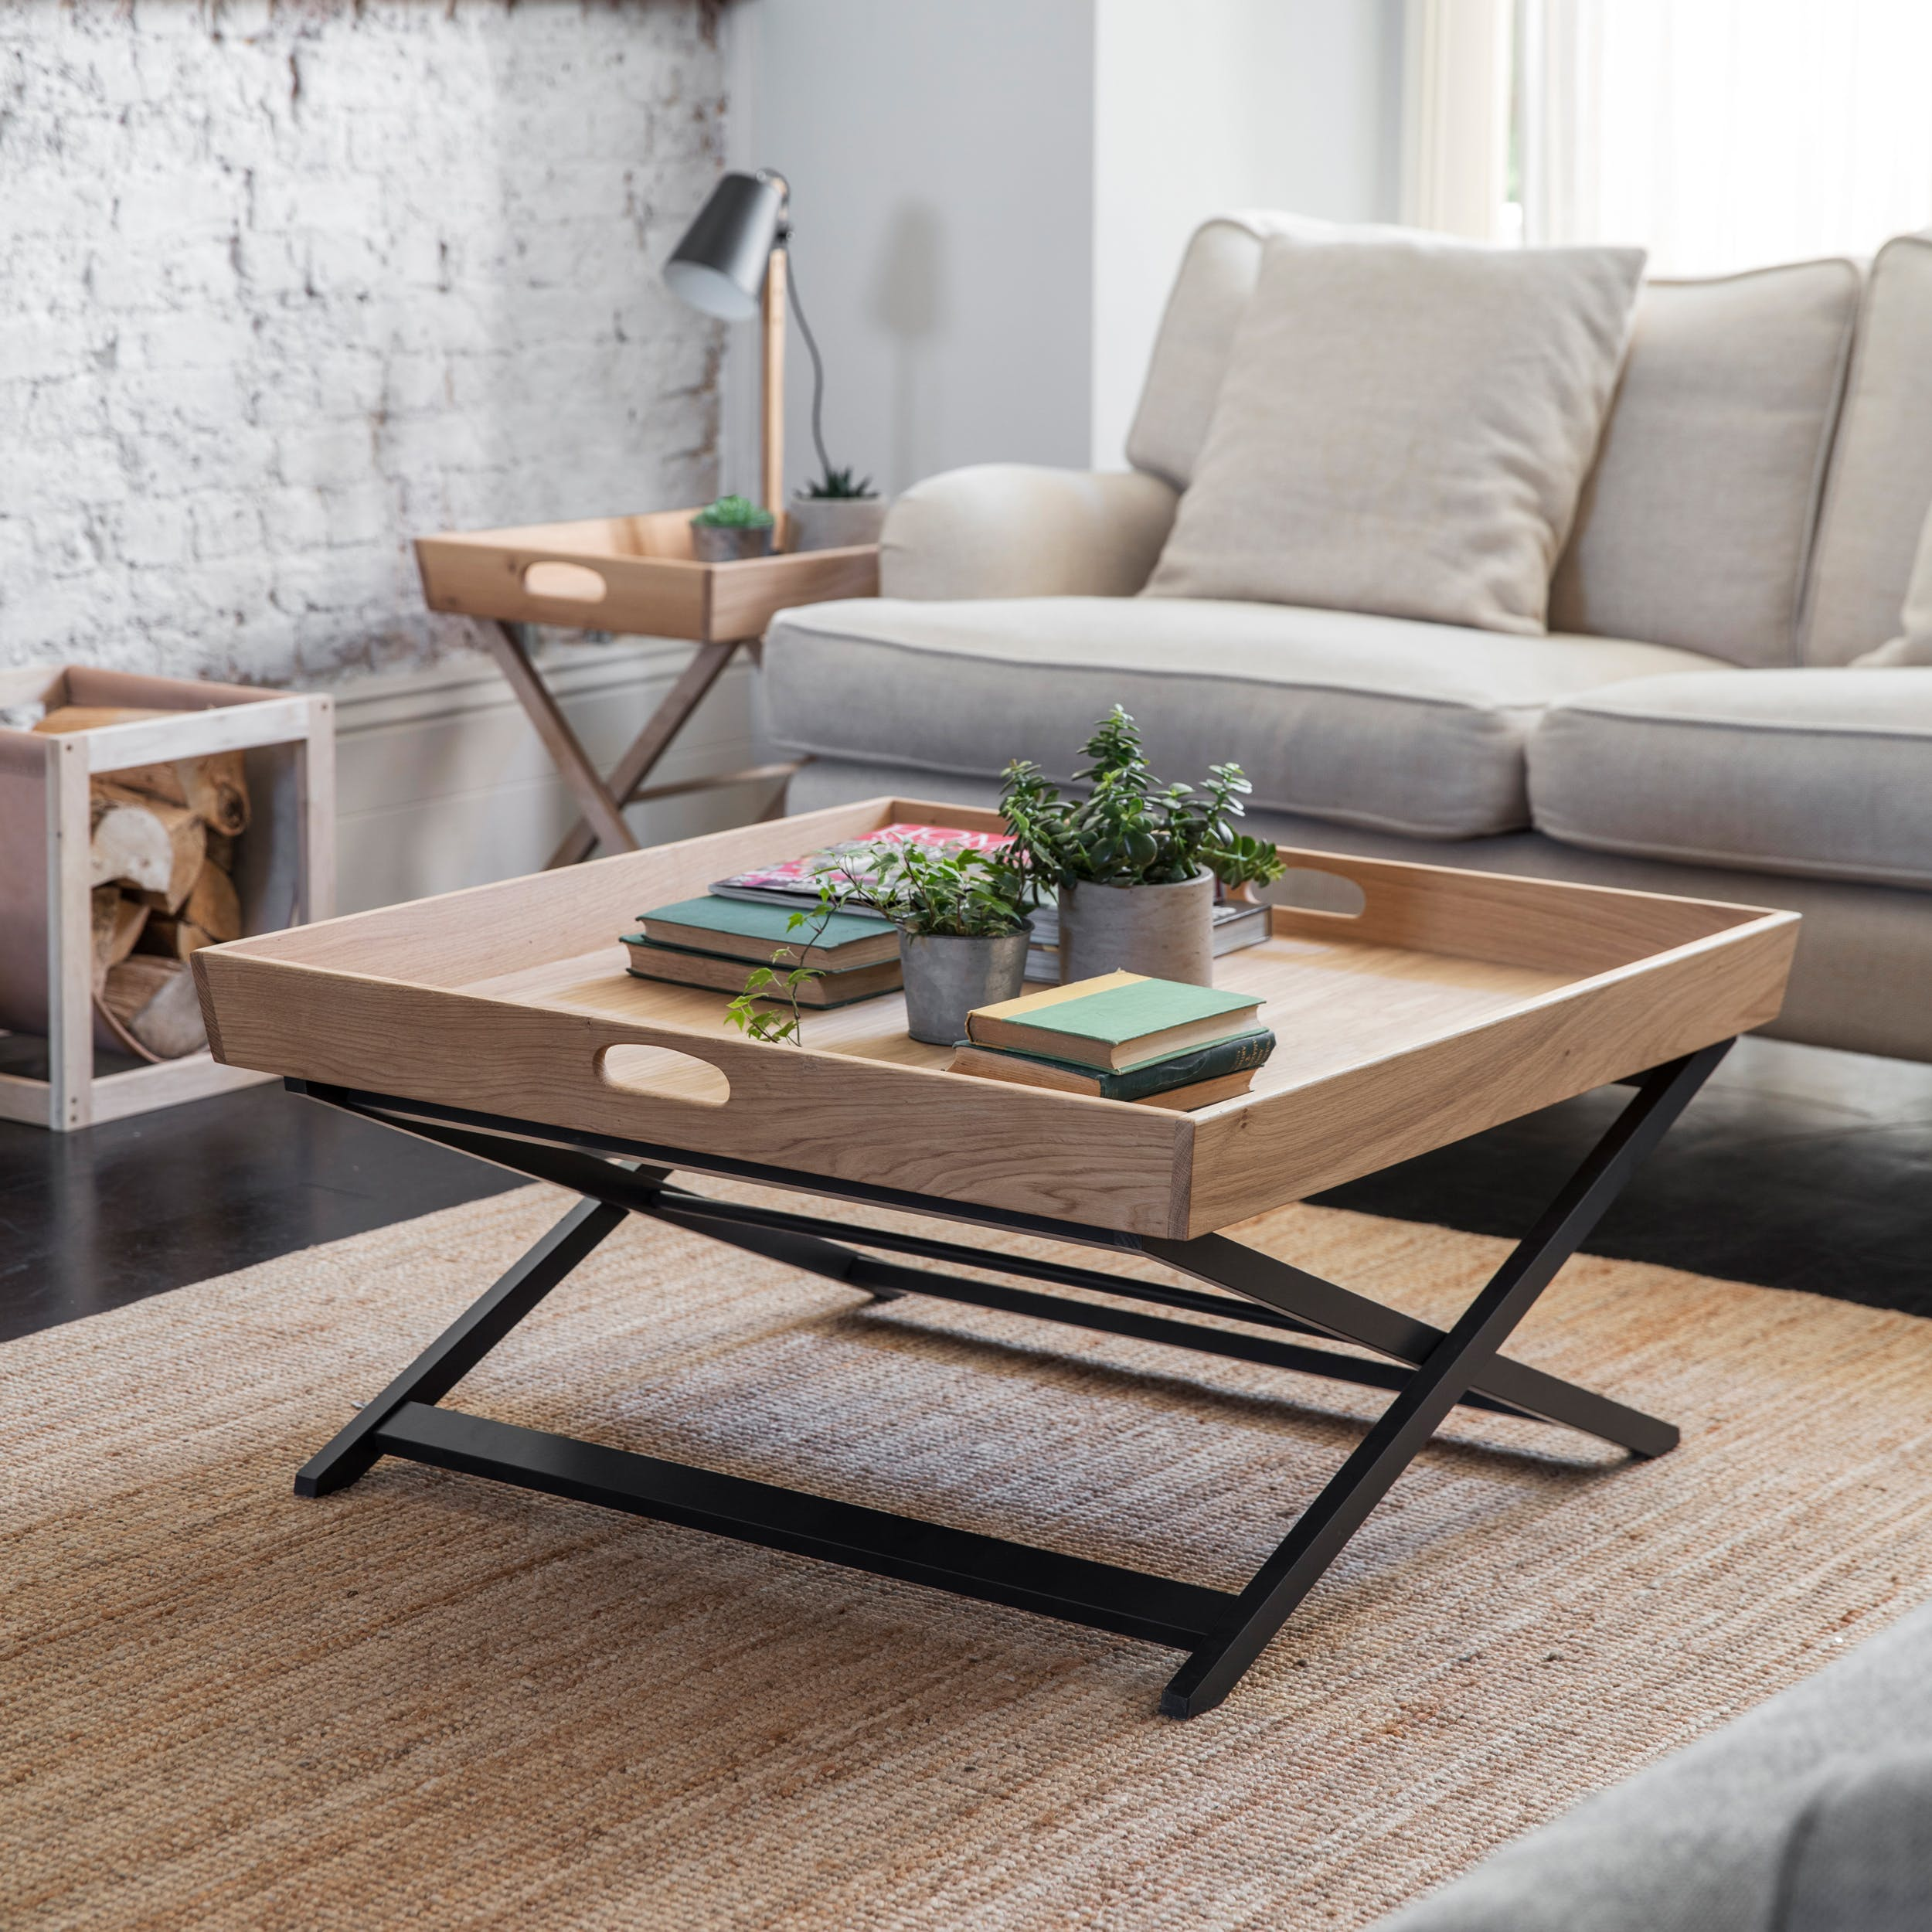 Oak Butlers Coffee Table Square in Black | Garden Trading